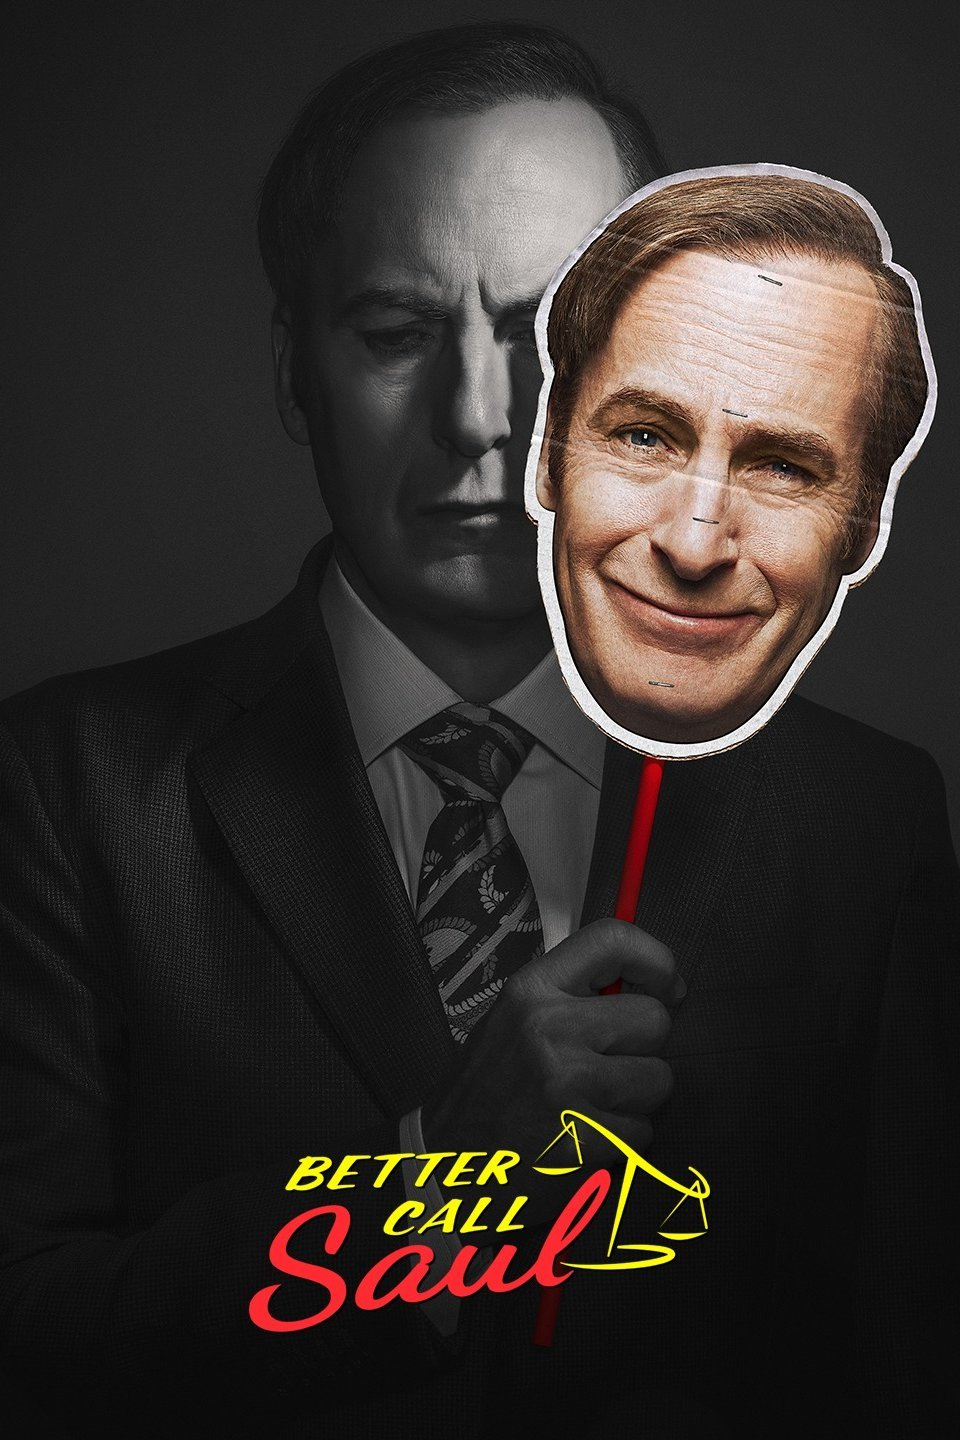 Better Call Saul Season 4 Download HDTV (Episode 2 Added)